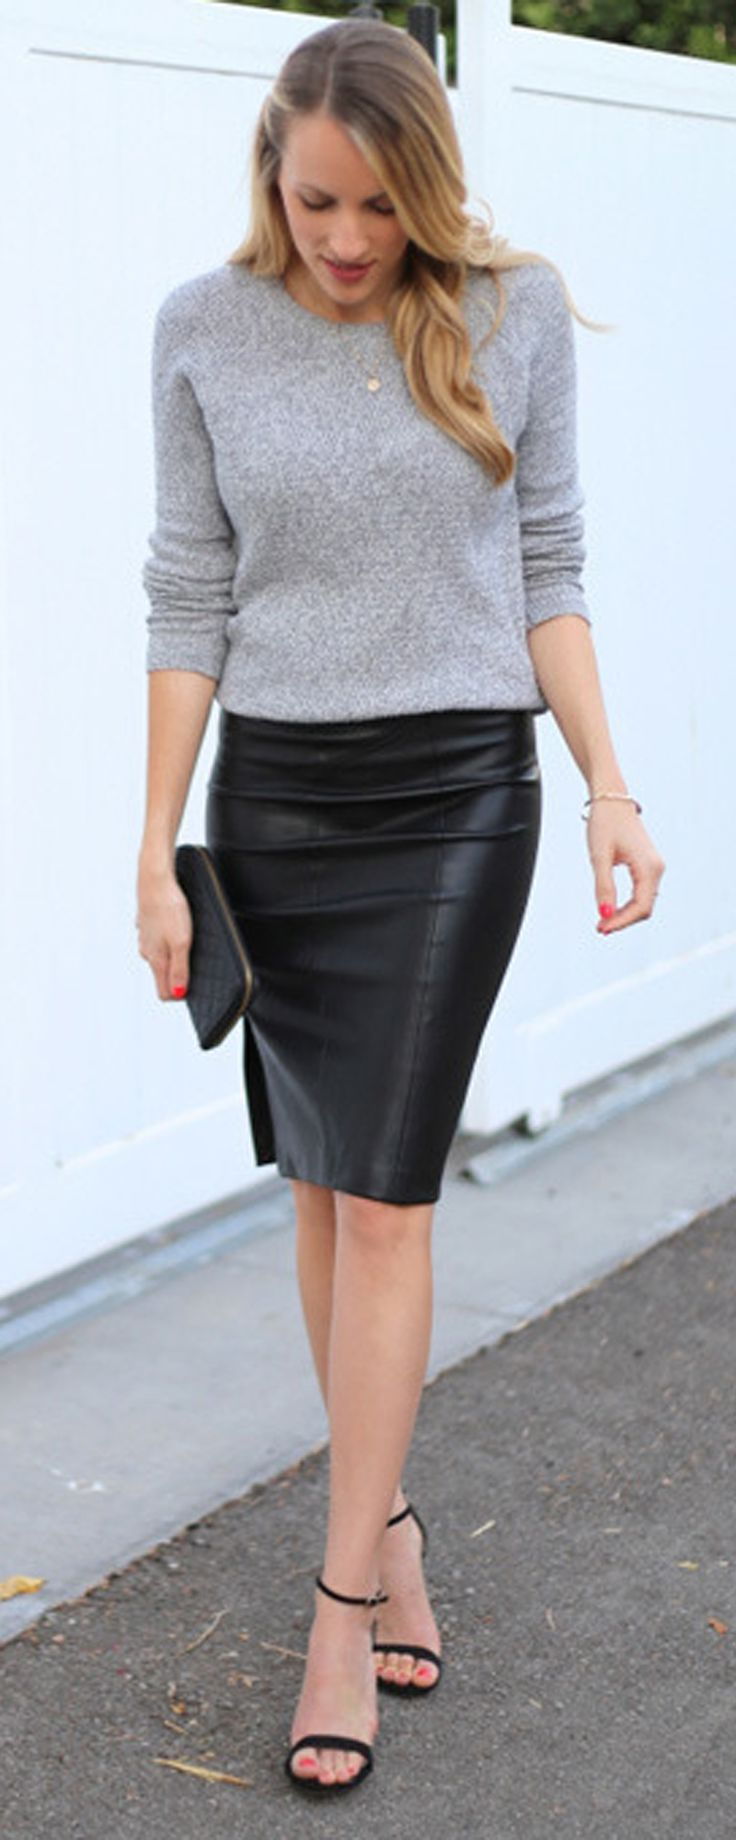 ❤Long sleeve sweater with leather skirt❤ Don't care if this is a trend now, this is my style. Gotta love the leather